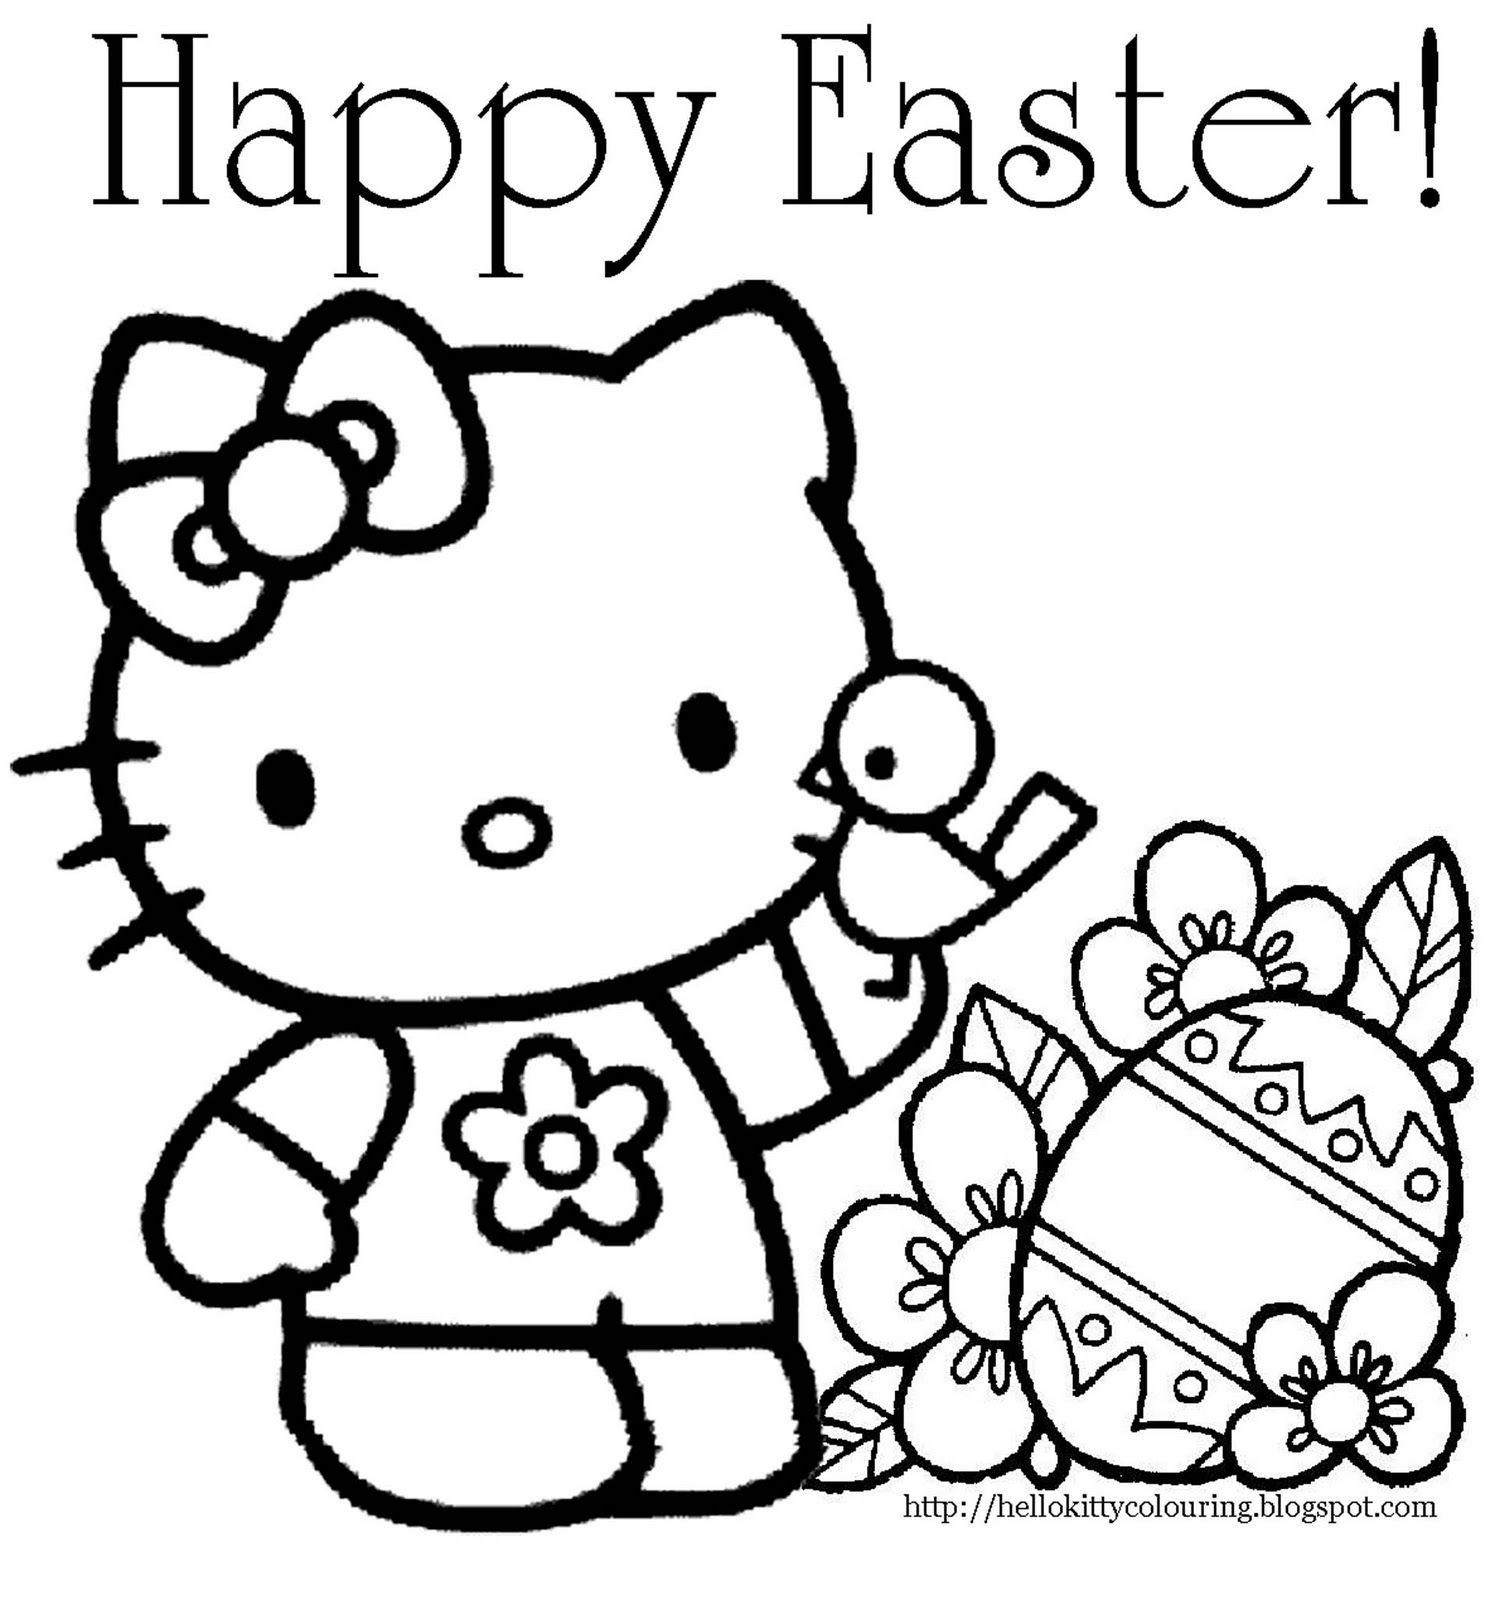 Hilla Kitte Coloriing   Hello Kitty Easter Coloring Page   Books - Free Easter Color Pages Printable